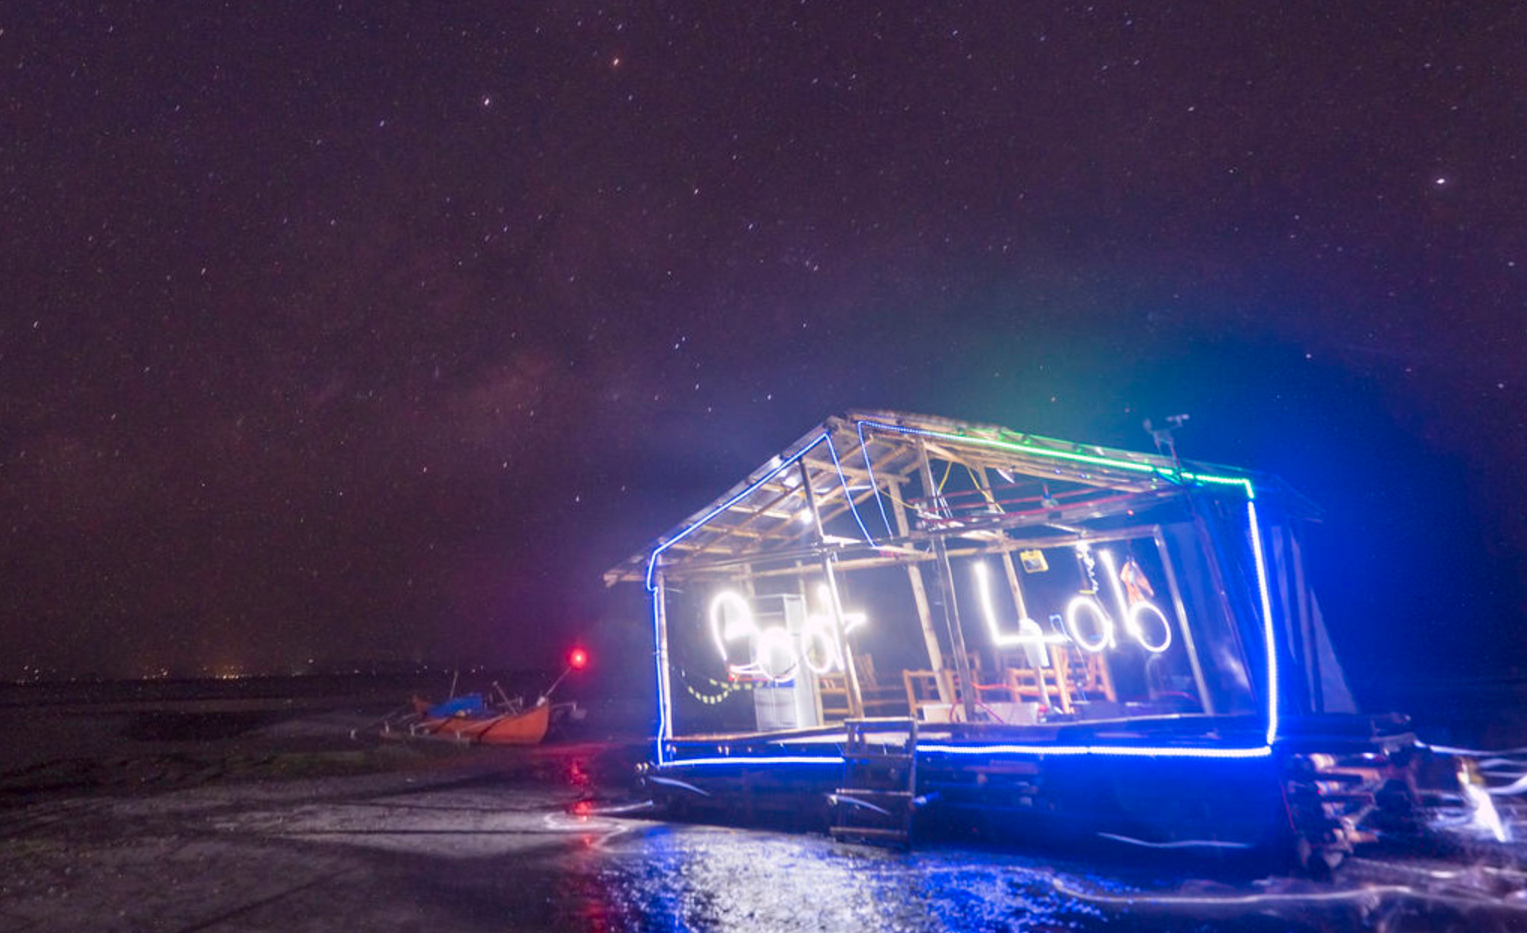 BOAT Lab and stars